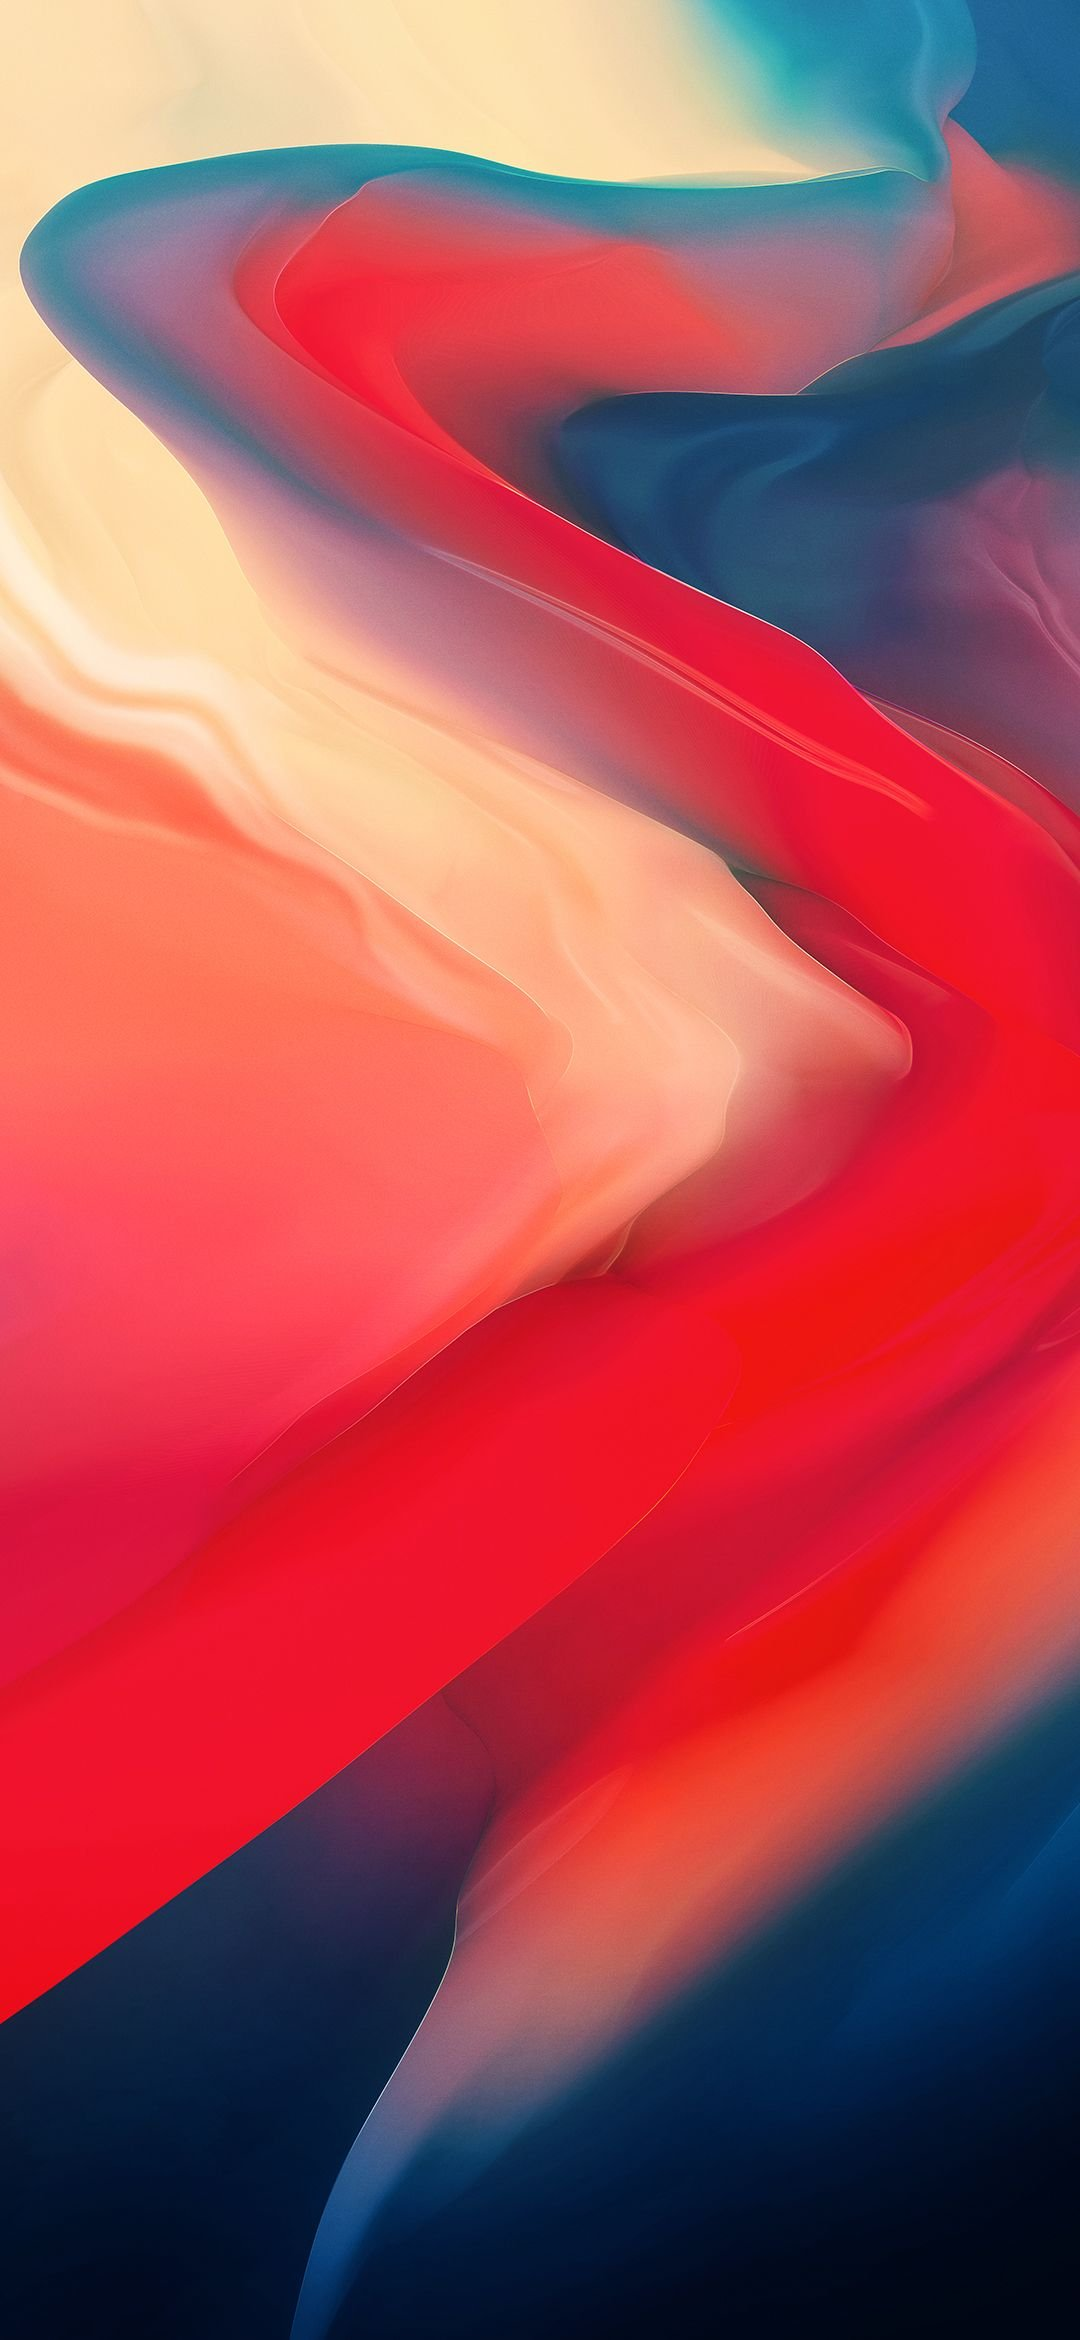 Download OnePlus 6T Wallpapers 6